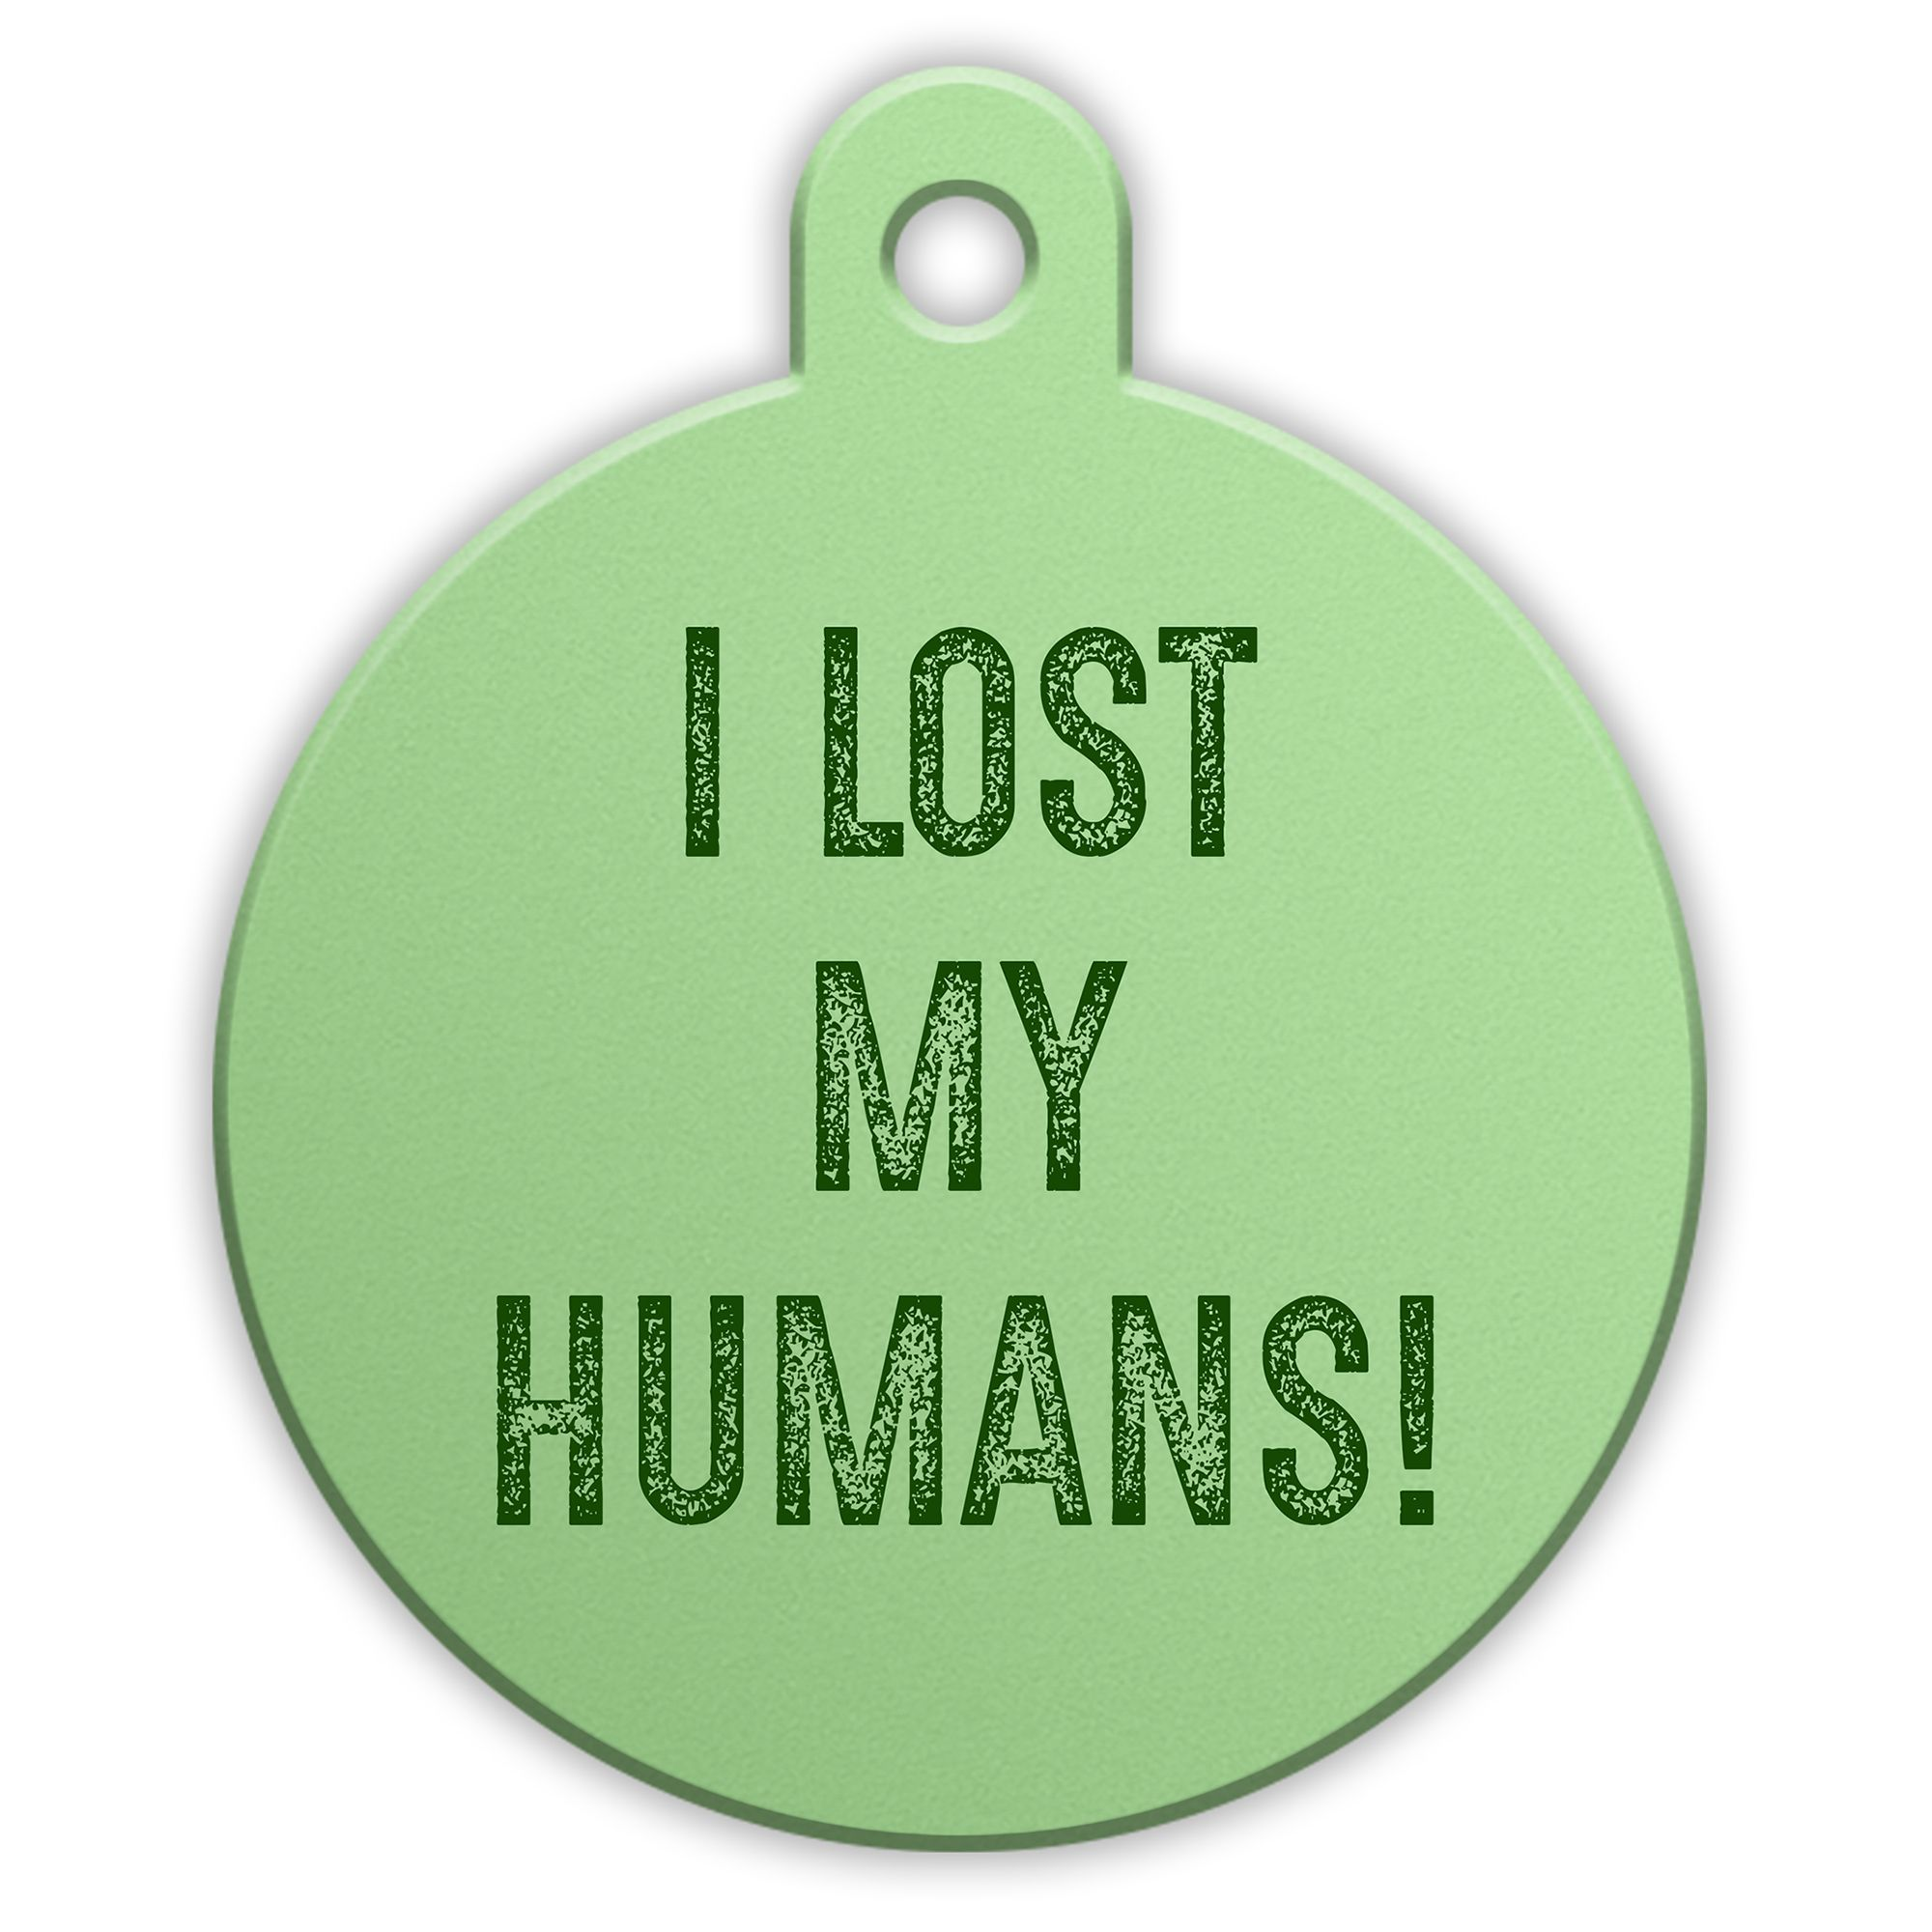 Petfetch Smart Pet Tag Lost My Humans Smart Tags